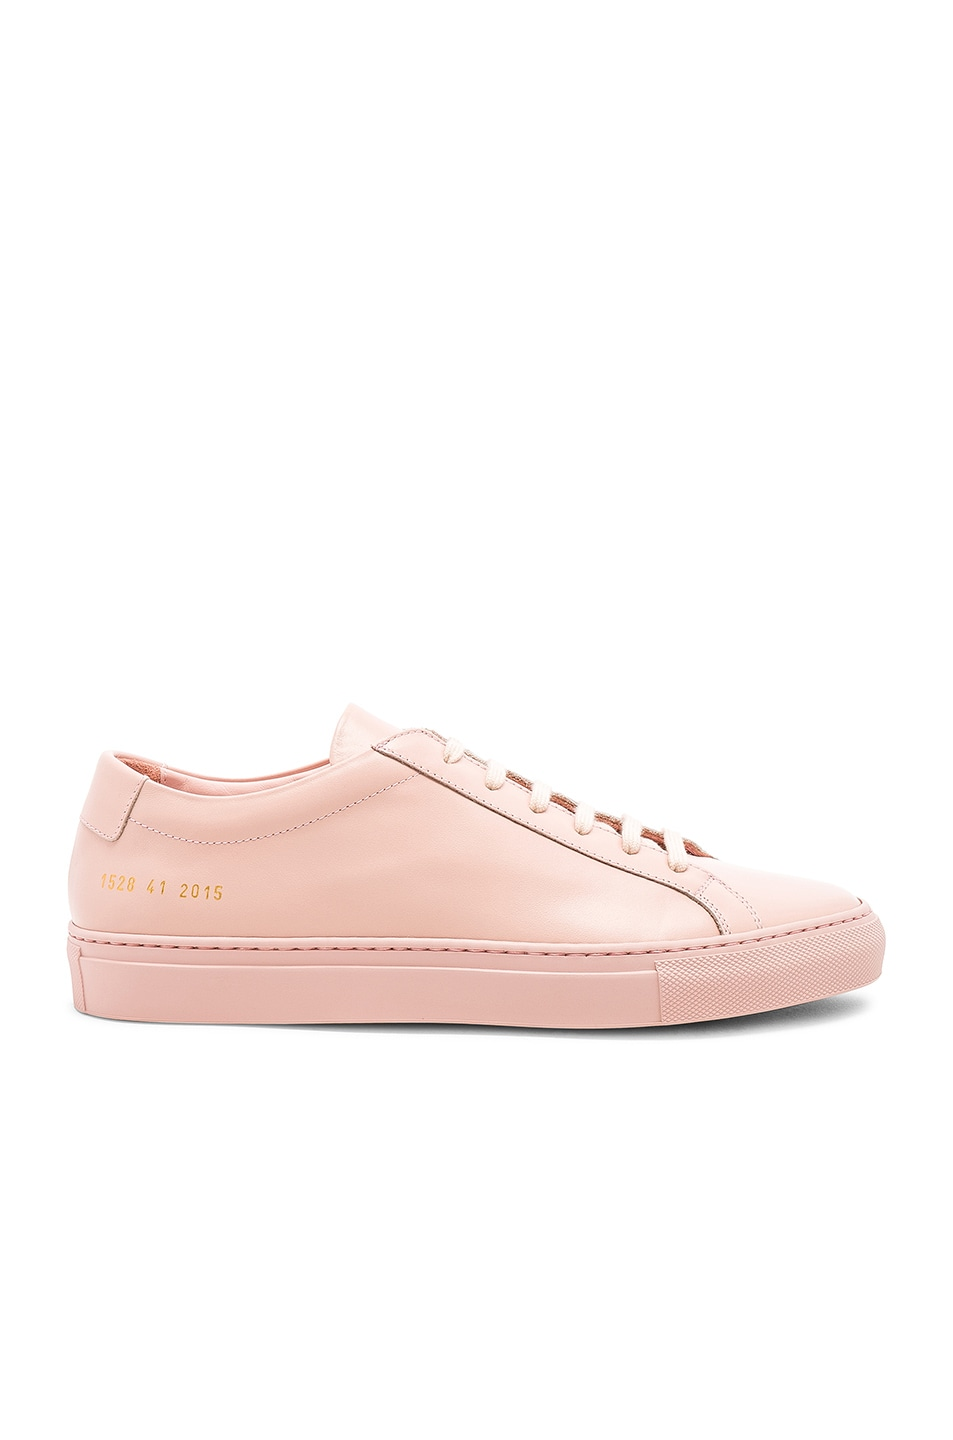 Image 2 of Common Projects Original Leather Achilles Low in Blush